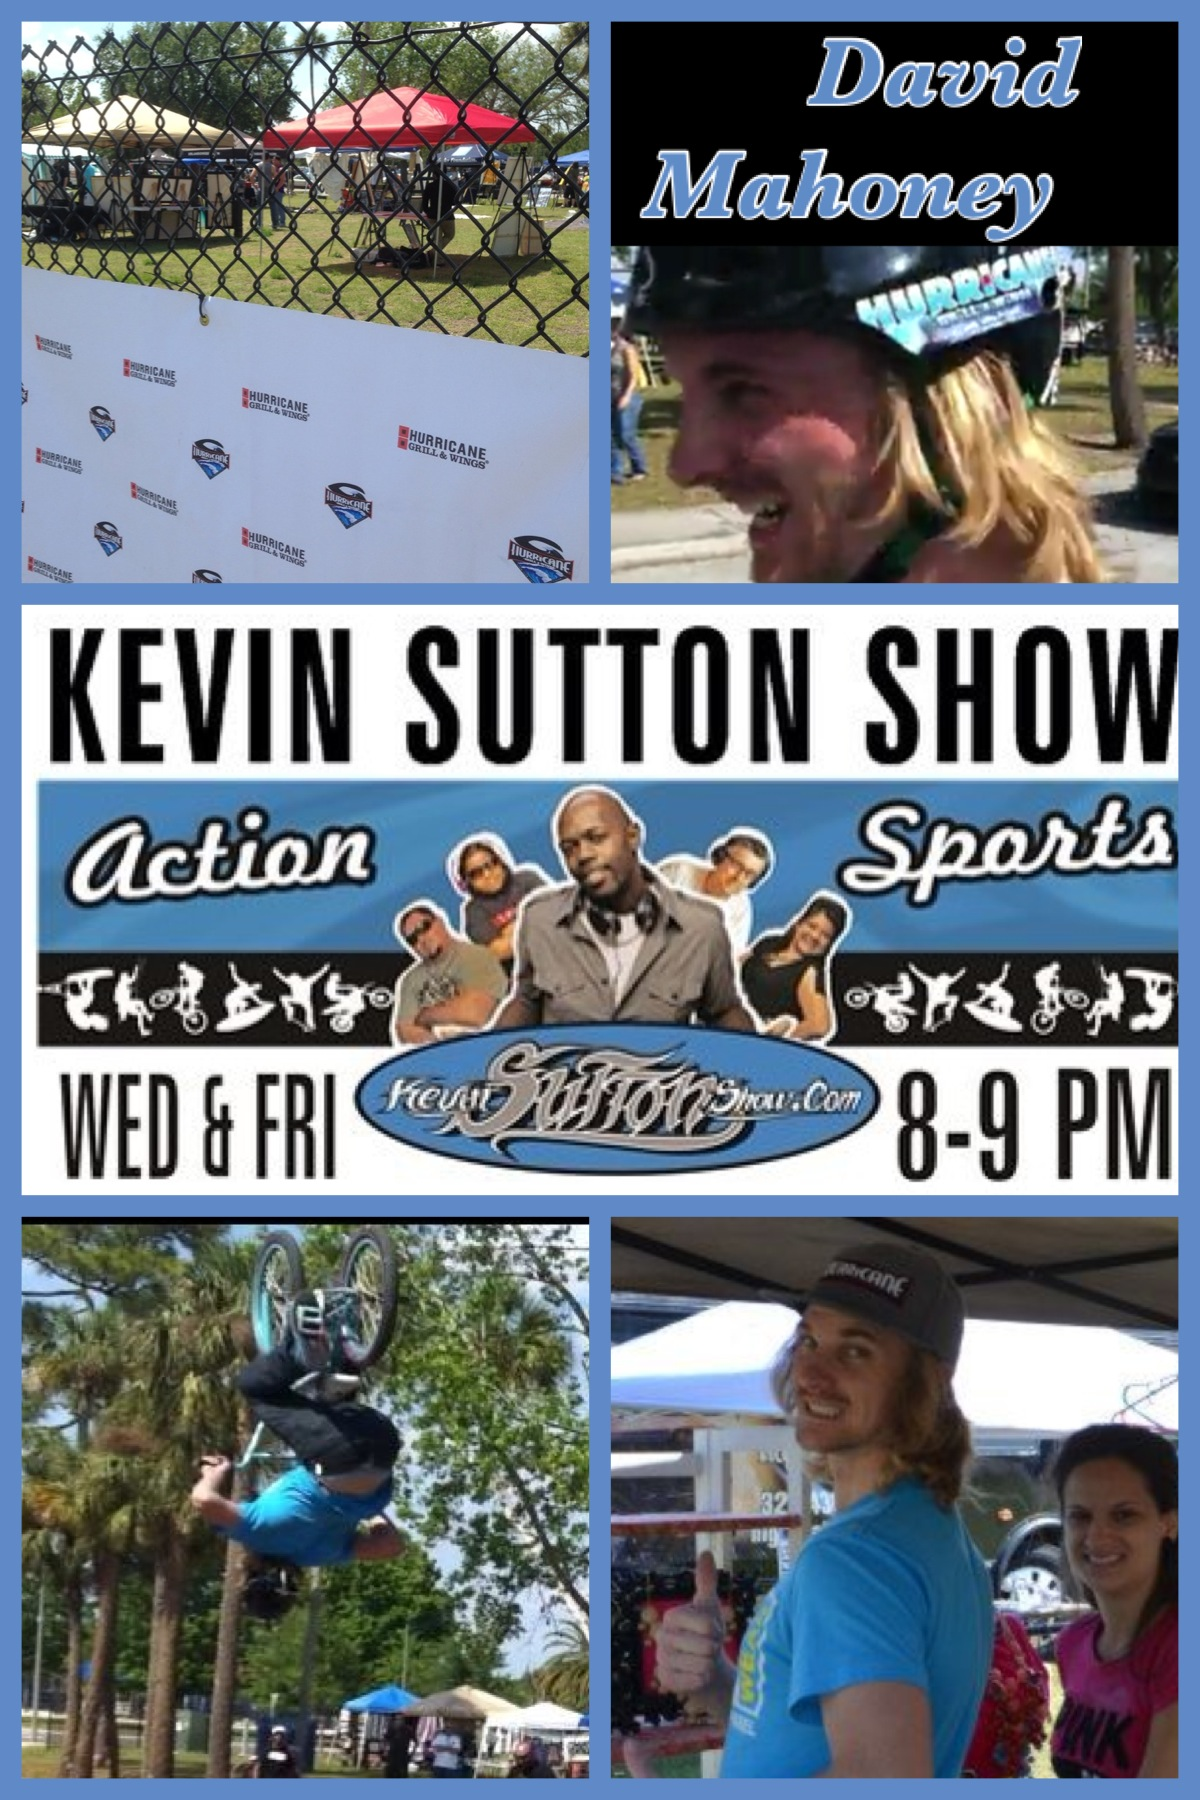 Kevin Sutton Show - Dave Mahoney